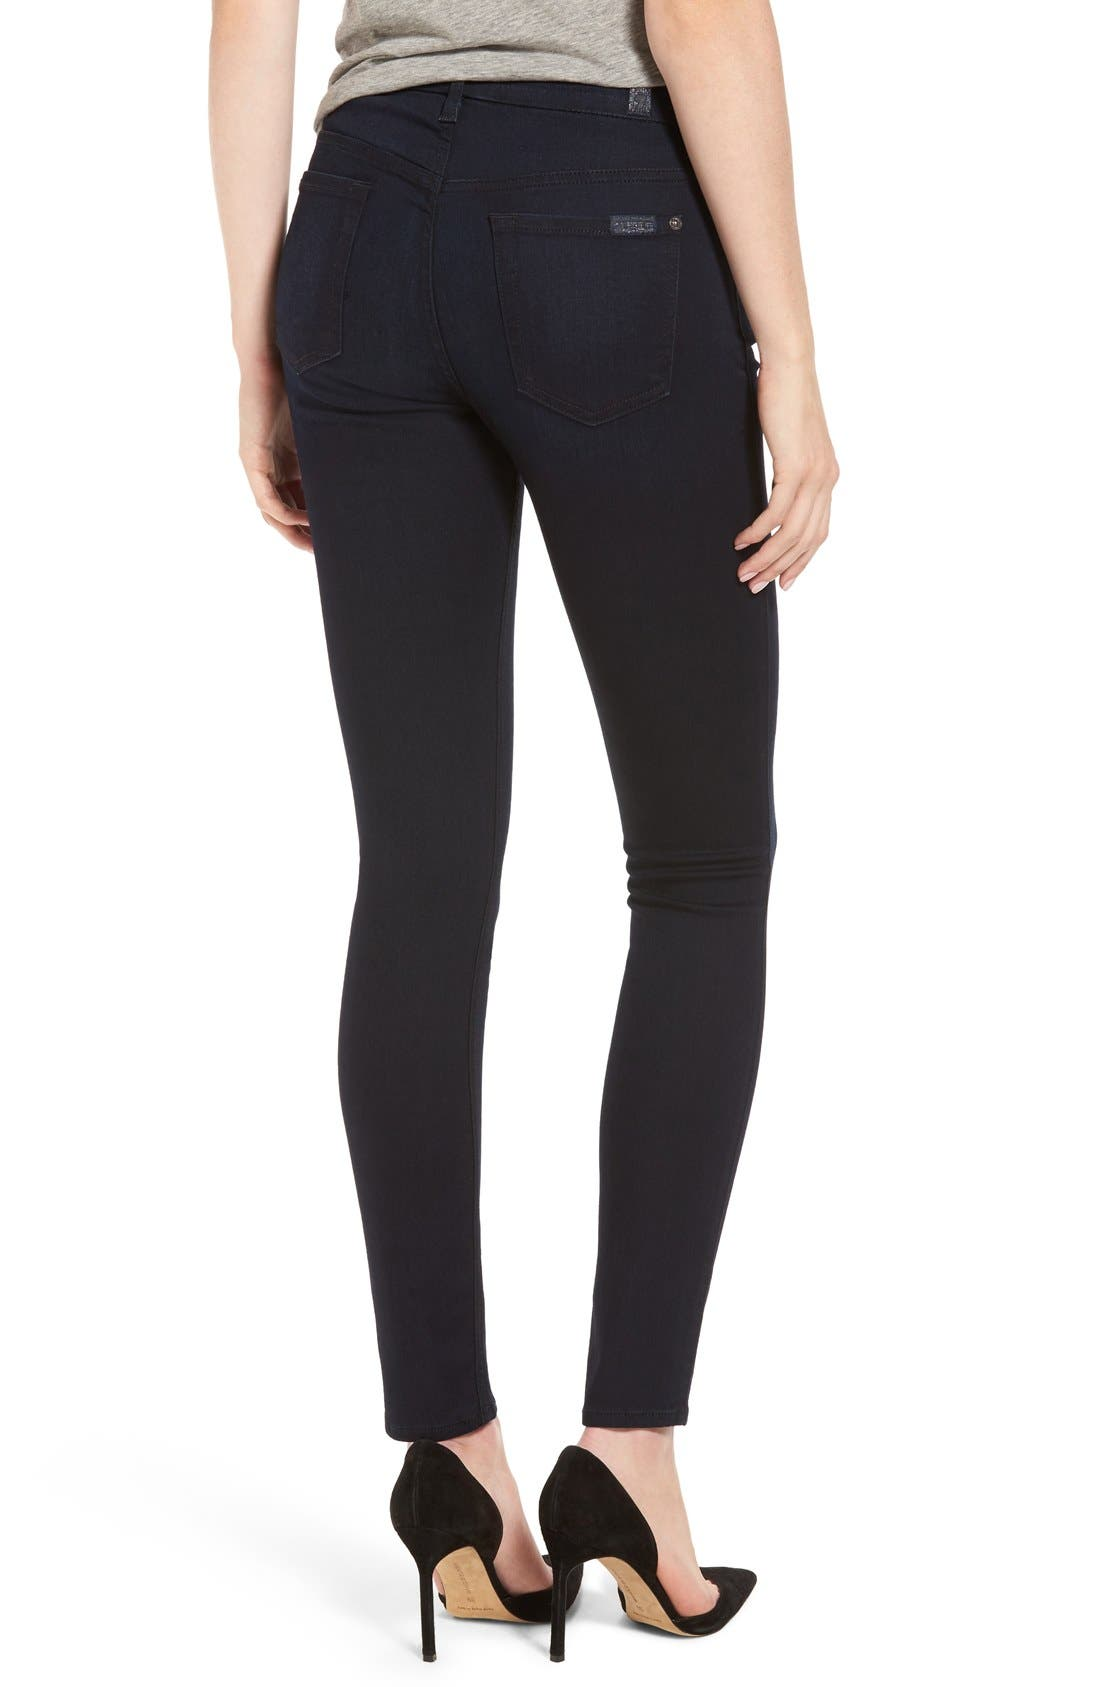 7 For All Mankind b(air) High Waist Skinny Jeans,                             Alternate thumbnail 2, color,                             400